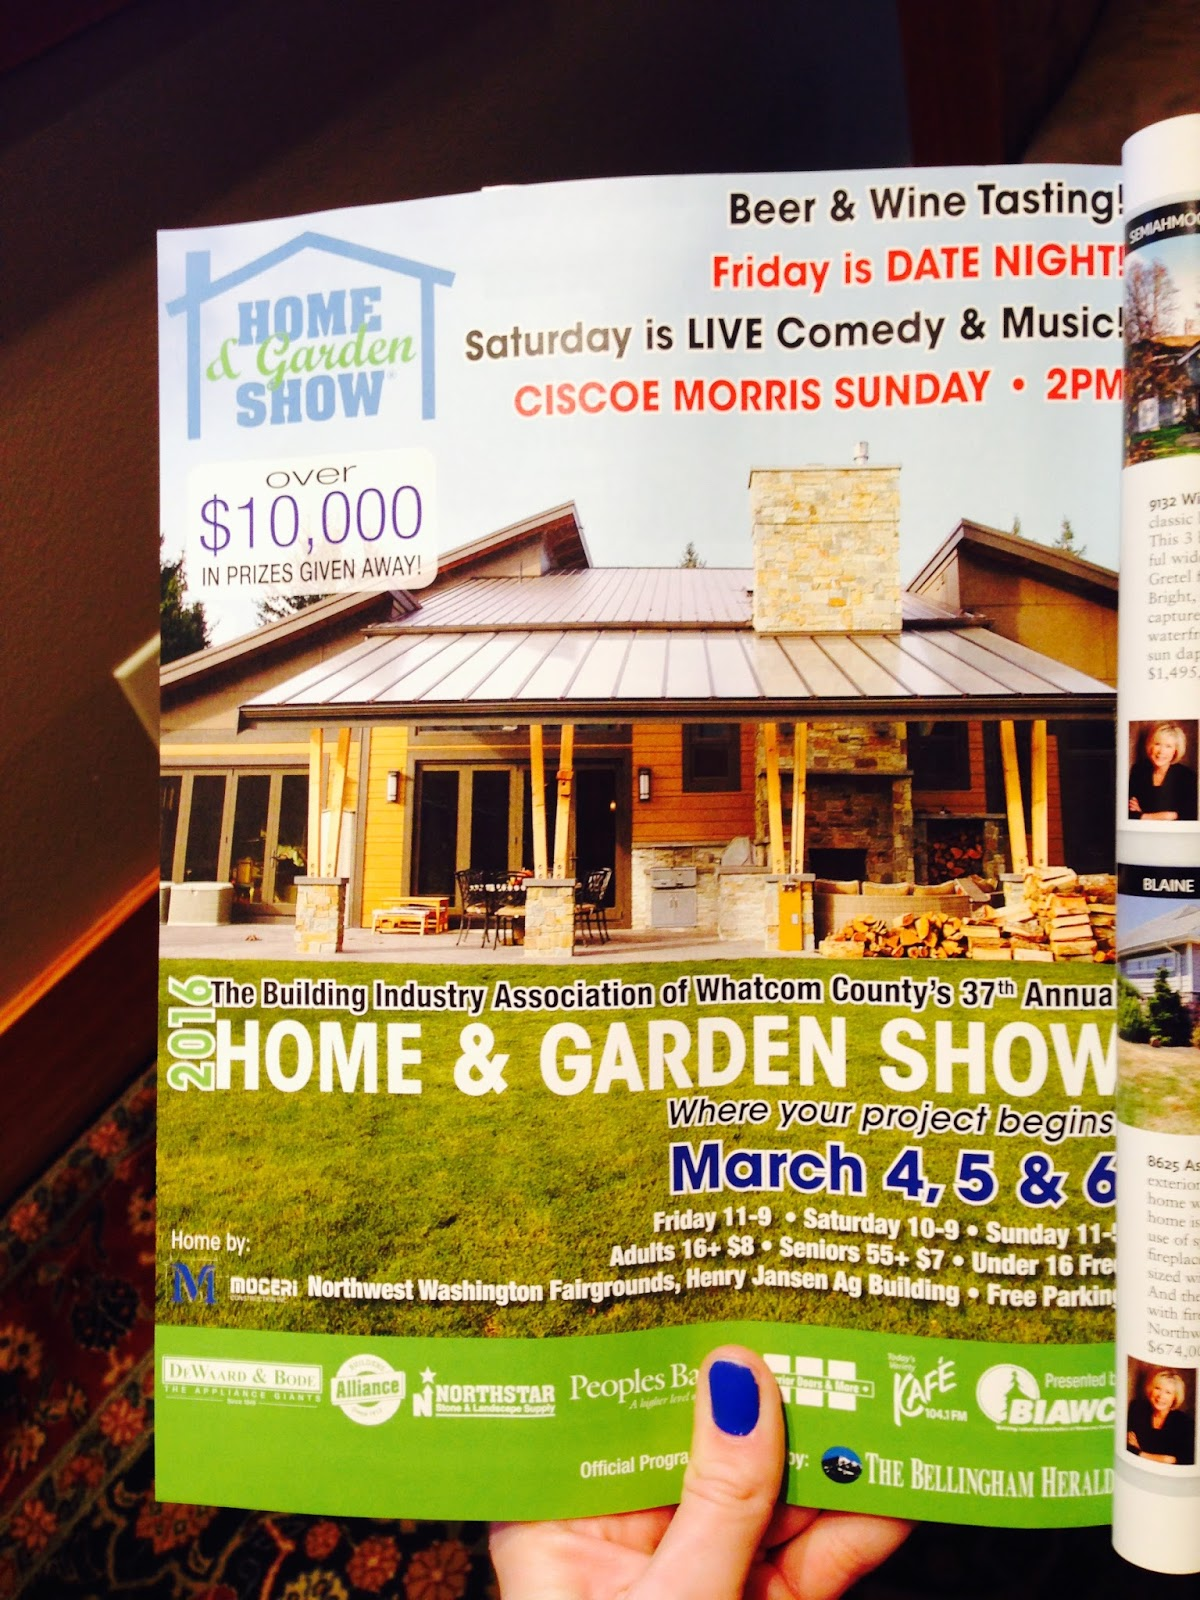 Have You Seen The 2016 Home Show Ad This Was One Of Our Favorite Projects I M Glad We Chance To Share It